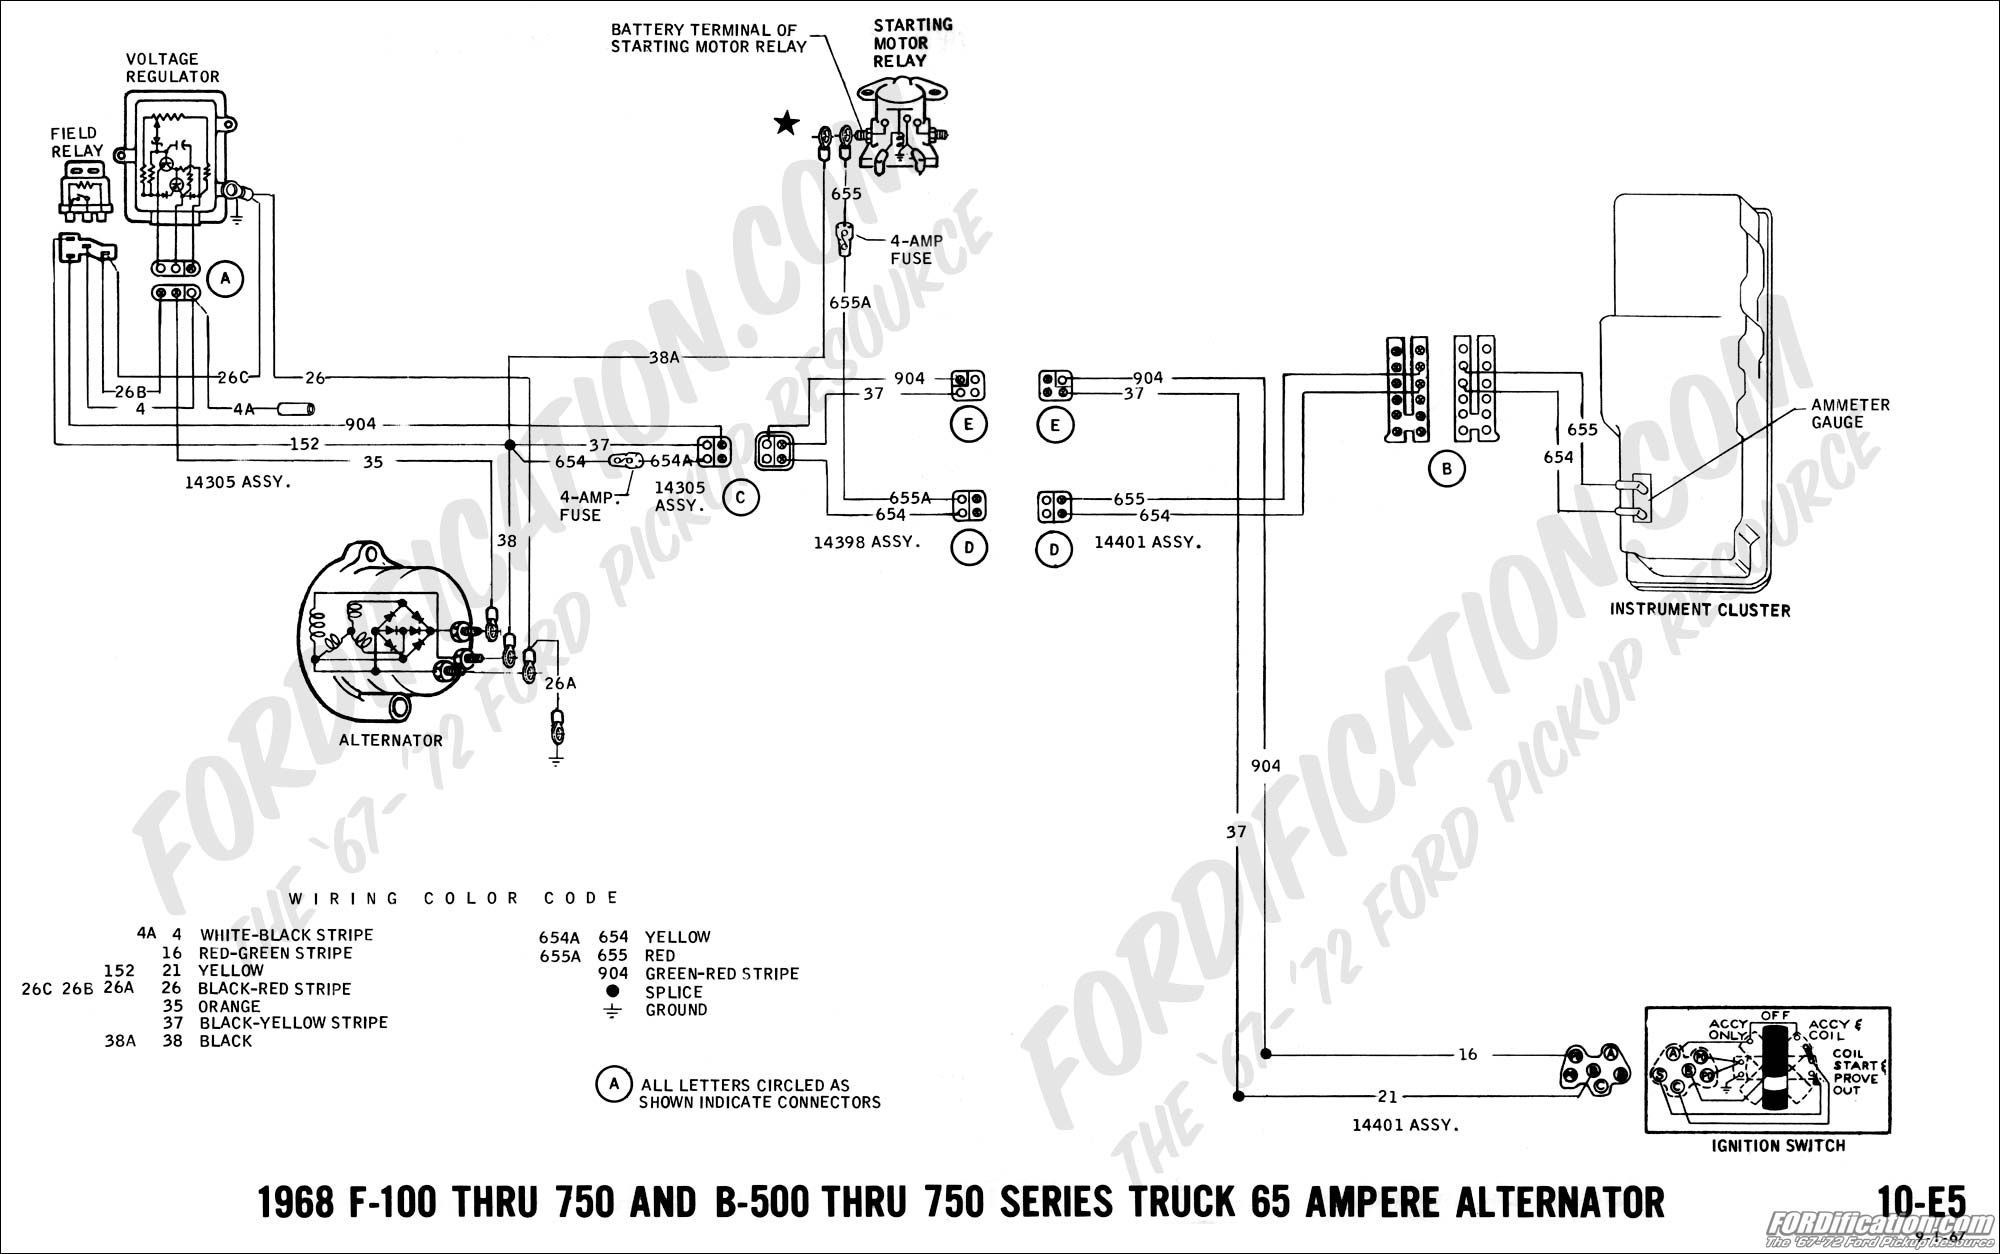 Wiring diagram alternator voltage regulator fresh wire alternator rectifier  regulator wiring diagram emergency ballast jpg 2000x1254